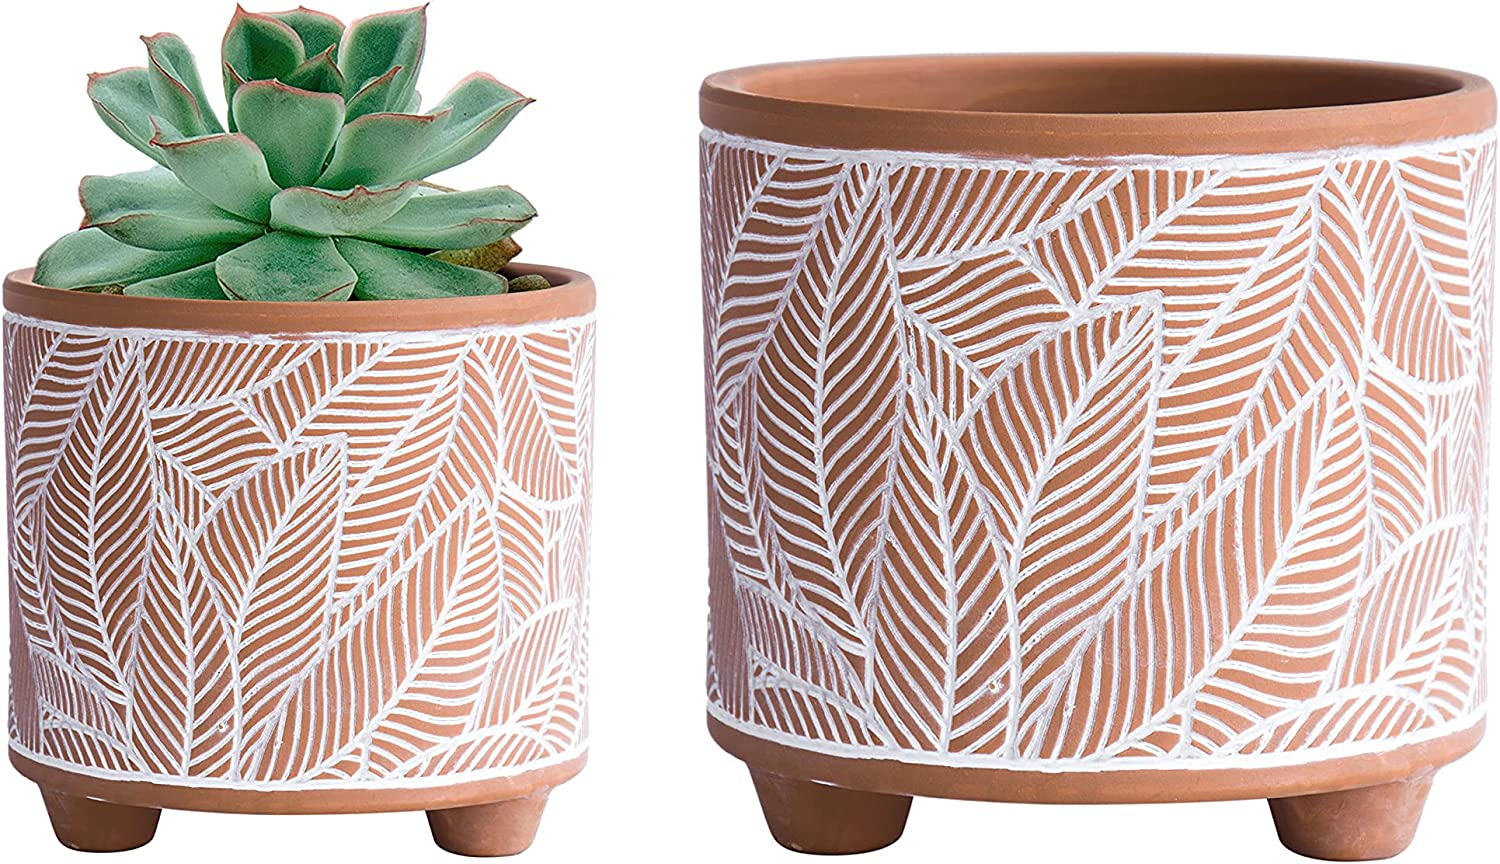 Set of Brand Cheap Sale Venue 2 In a popularity Terracotta Planter Pots 6.4 Pa 4.4 Inch Leaves